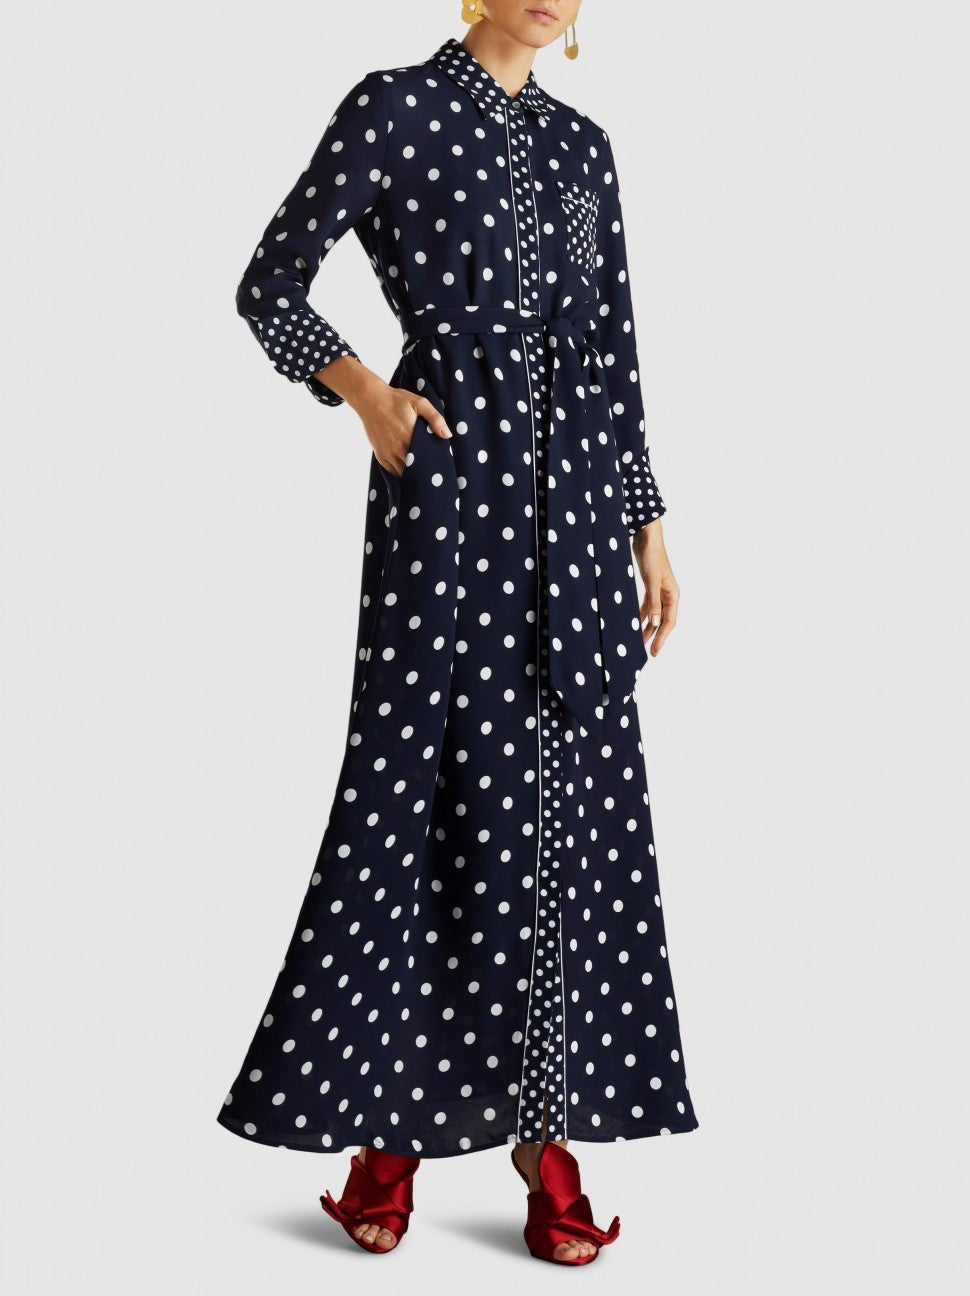 Layeur polka dot dress